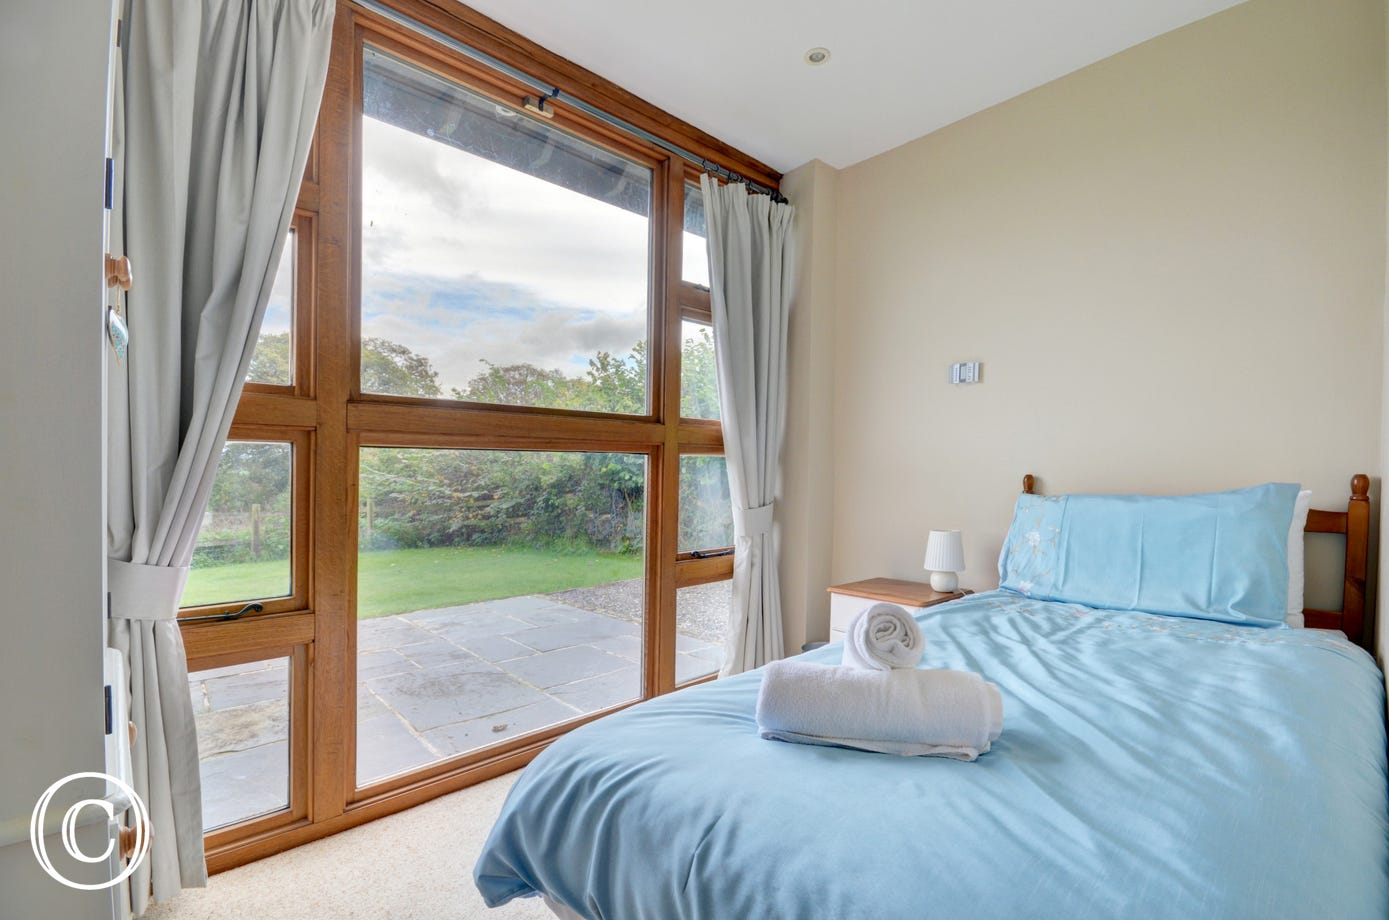 Wake up to stunning countryside views